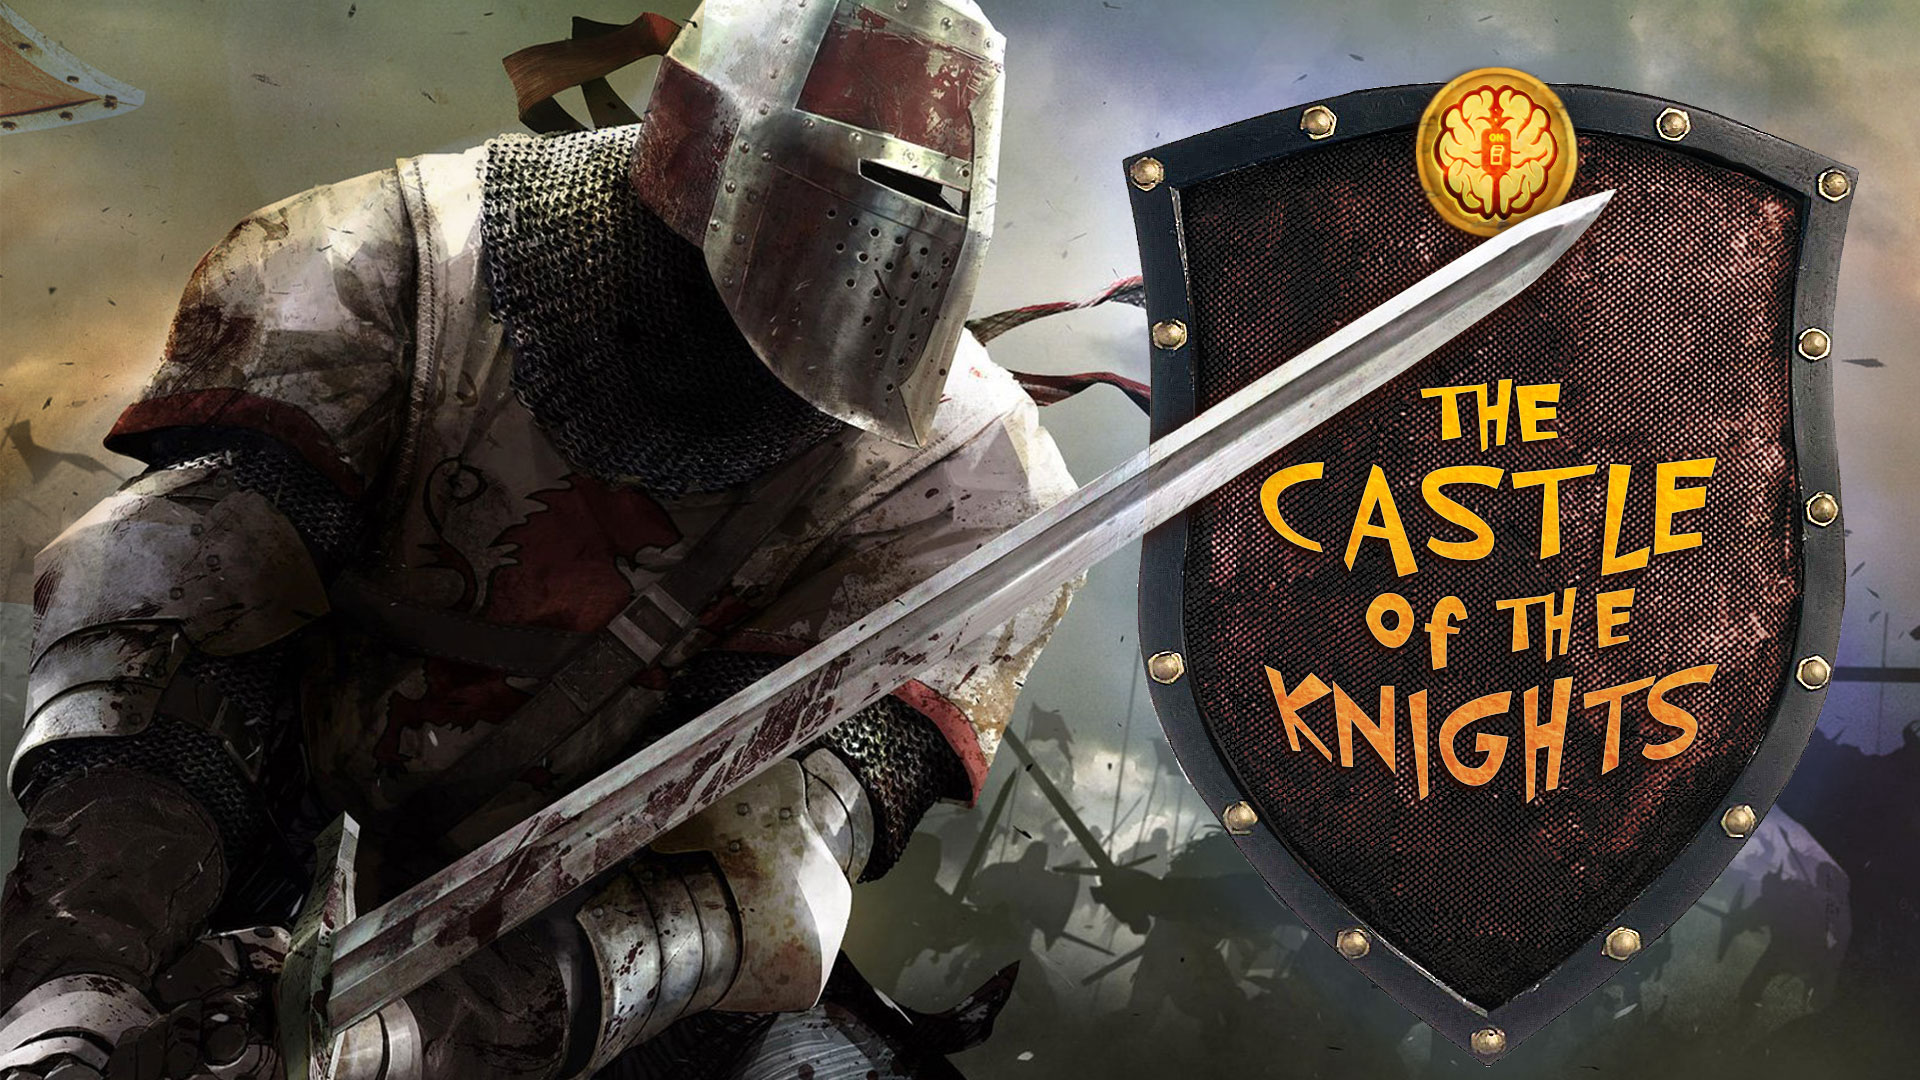 CASTLE OF THE KNIGHTS by BRAIN ON